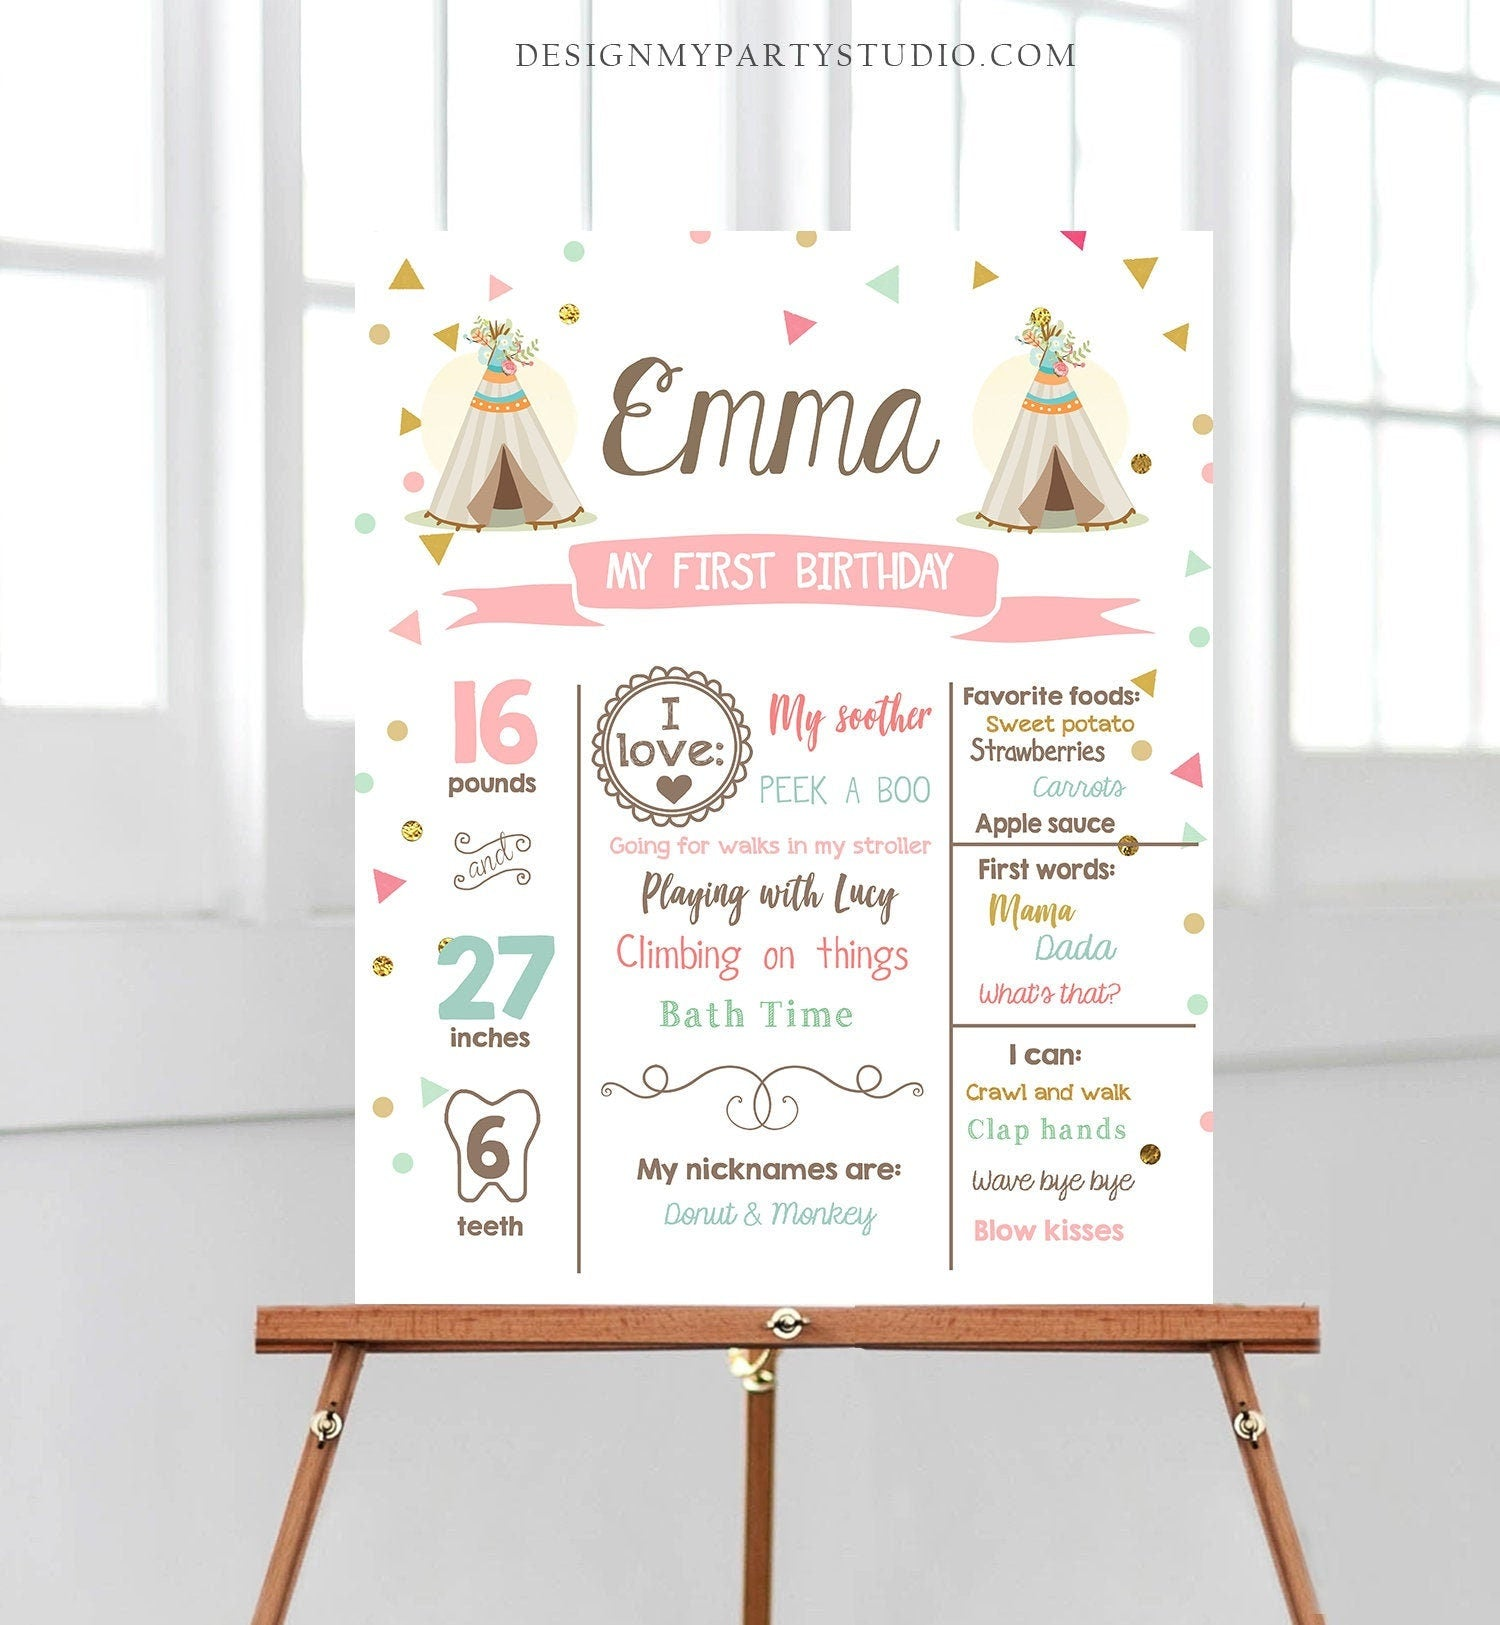 Editable Teepee Birthday Milestones Sign Wild One Tribal First Birthday 1st Birthday Girl Pink Gold Boho Download Template Printable 0092